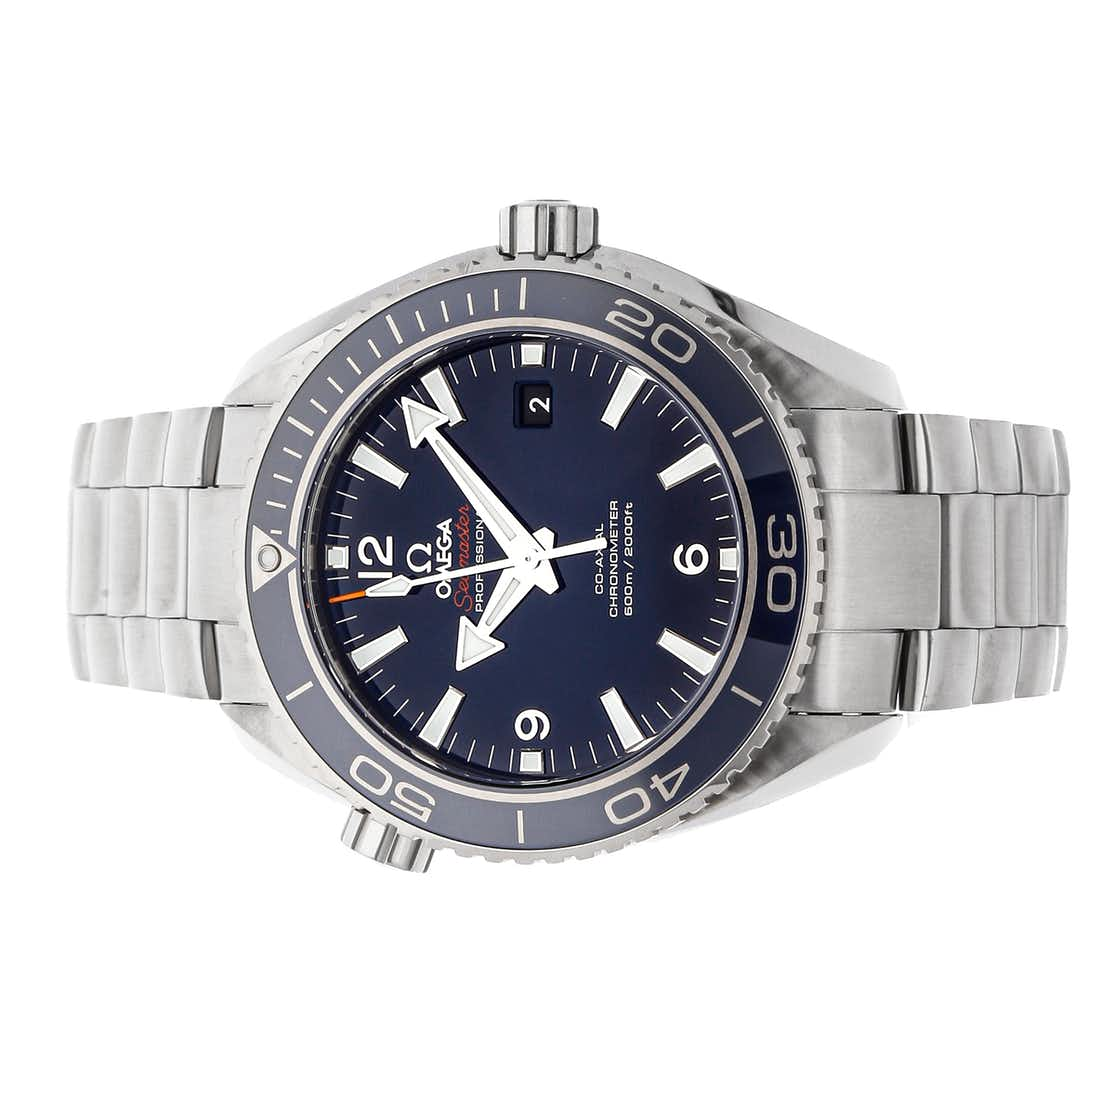 Omega Seamaster Planet Ocean 600m Co-Axial 232.90.46.21.03.001